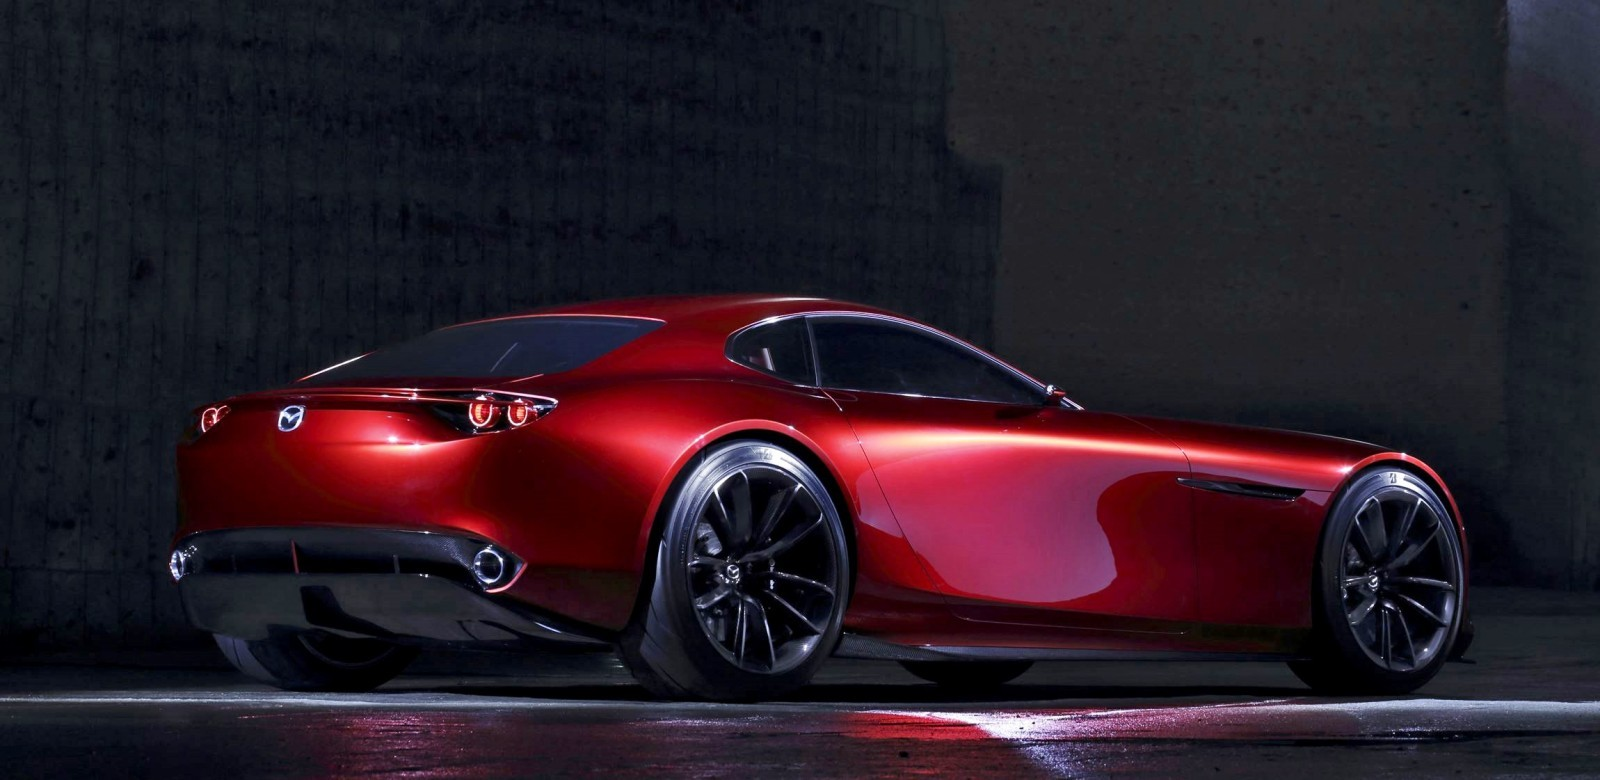 2015 Mazda RX-VISION Concept Is - 181.6KB